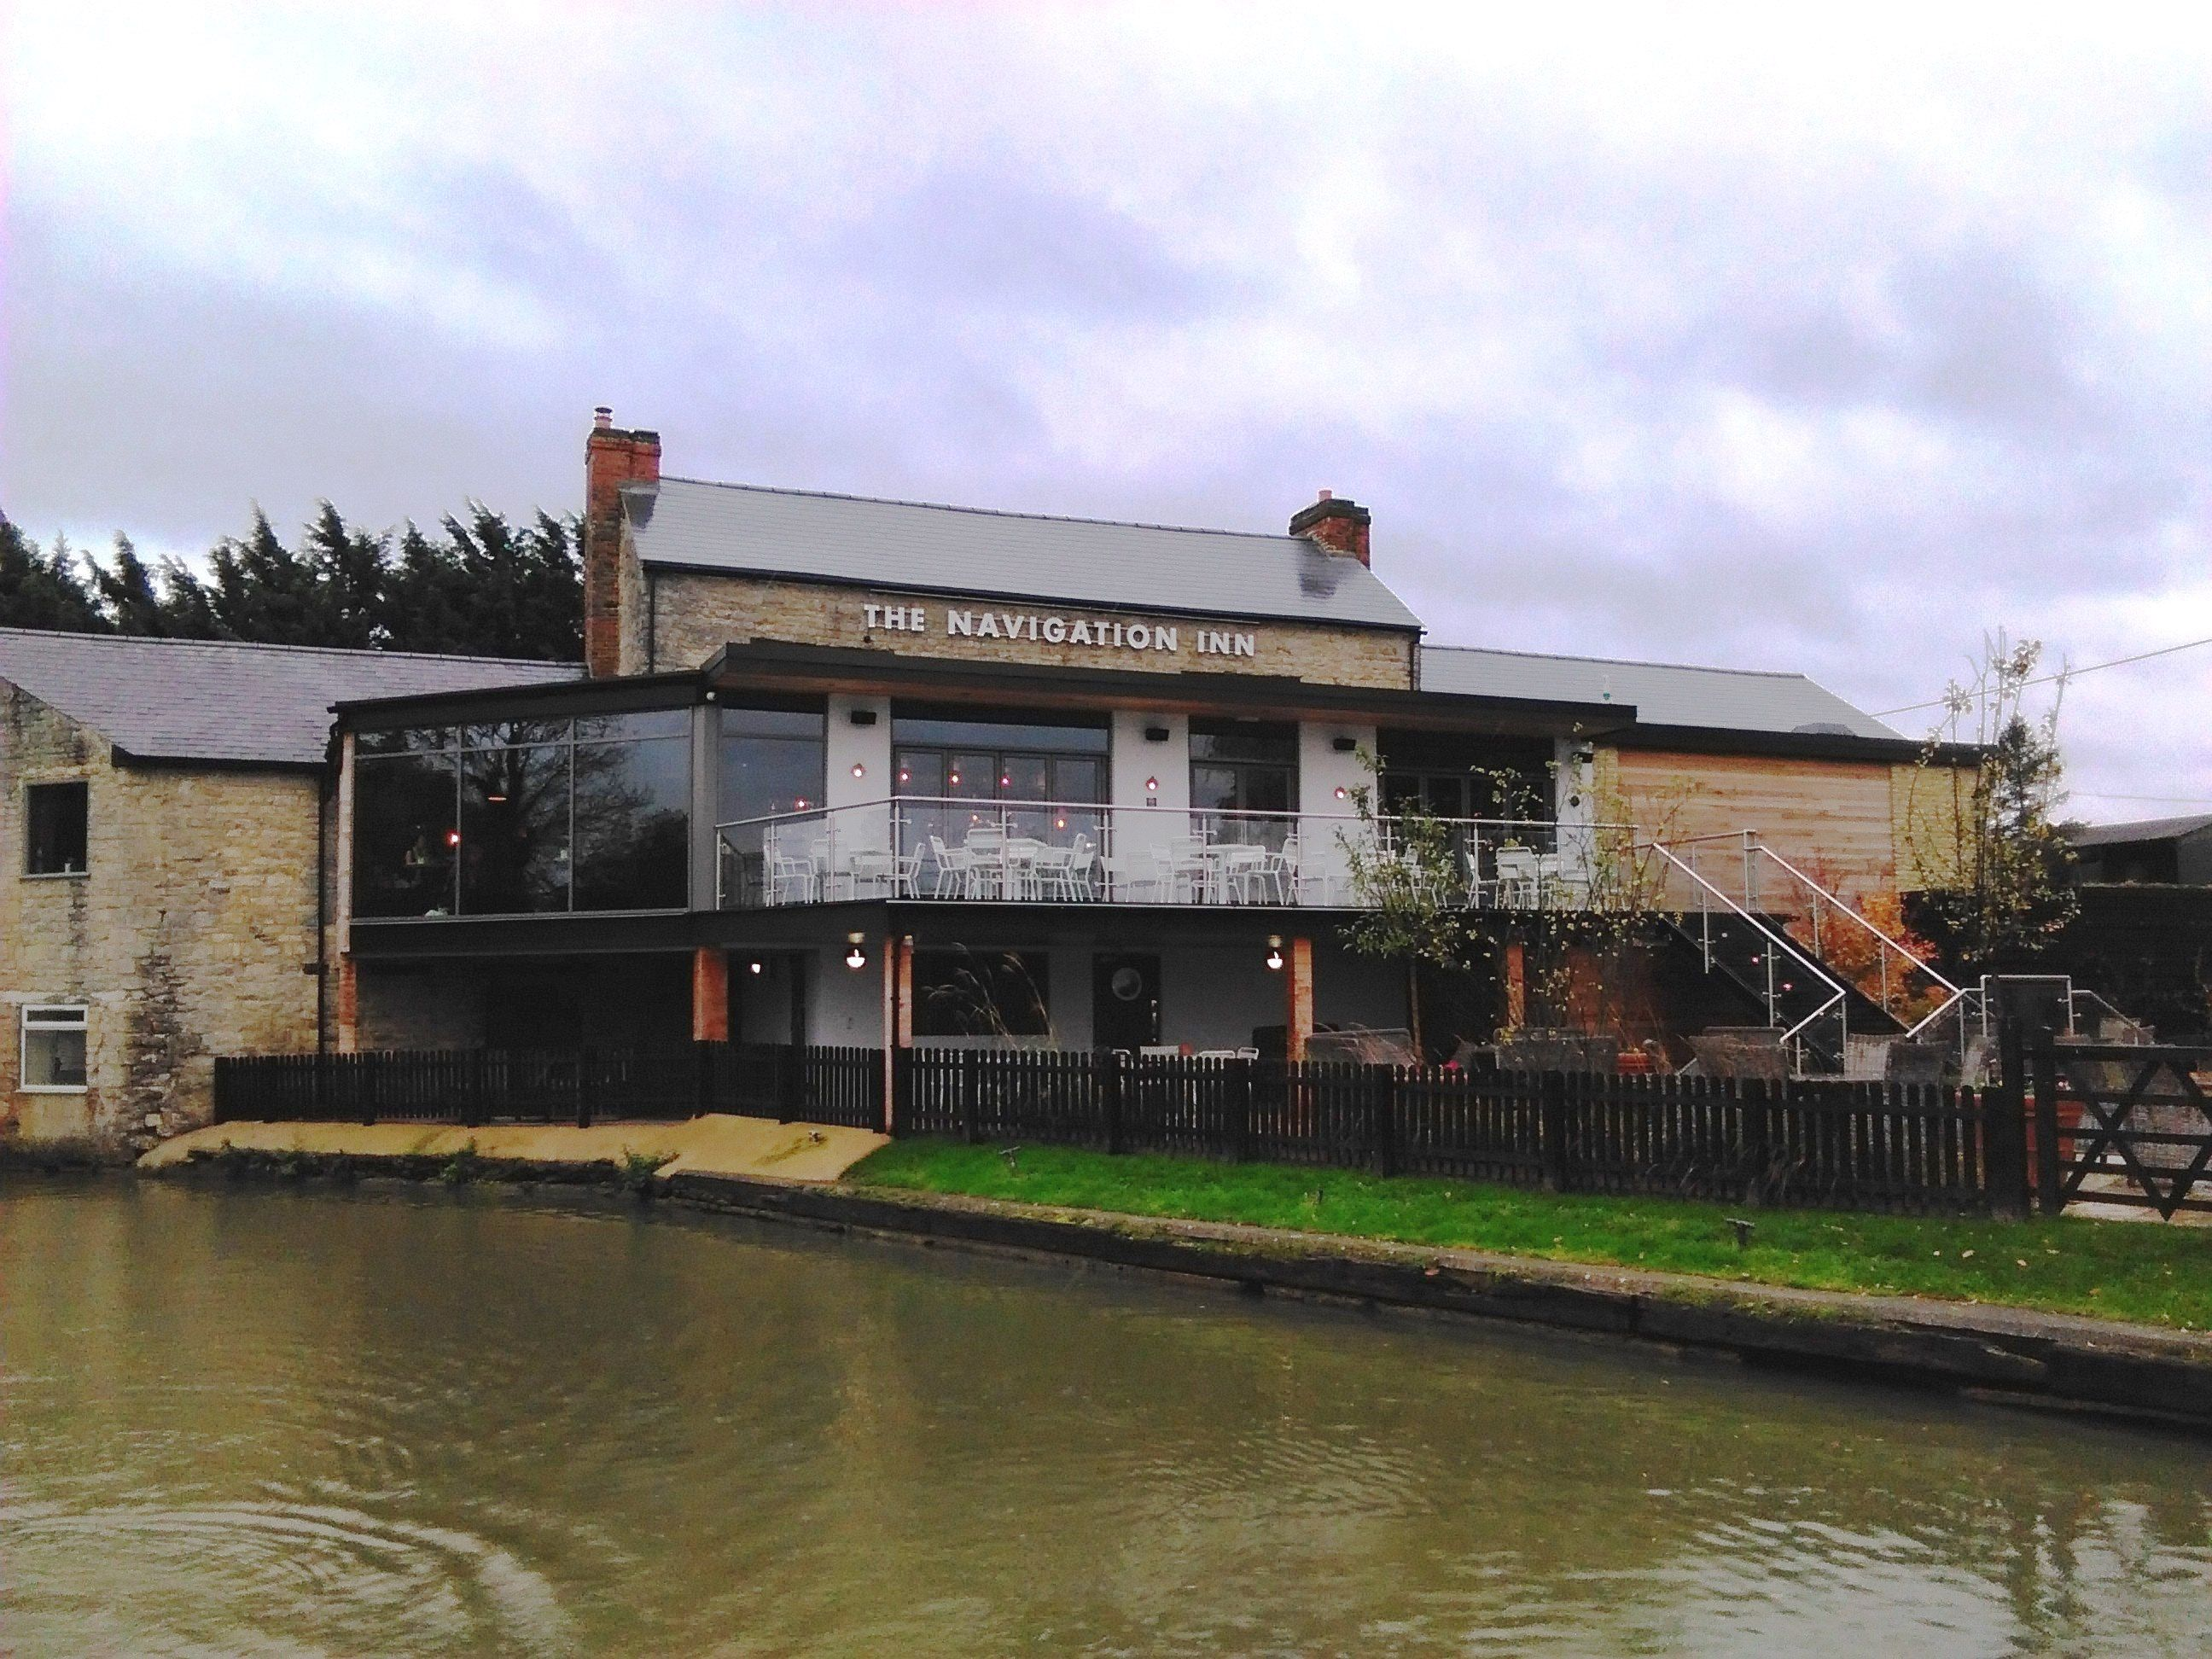 Pin by ABC Boat Hire on Canal Images - Gayton Marina